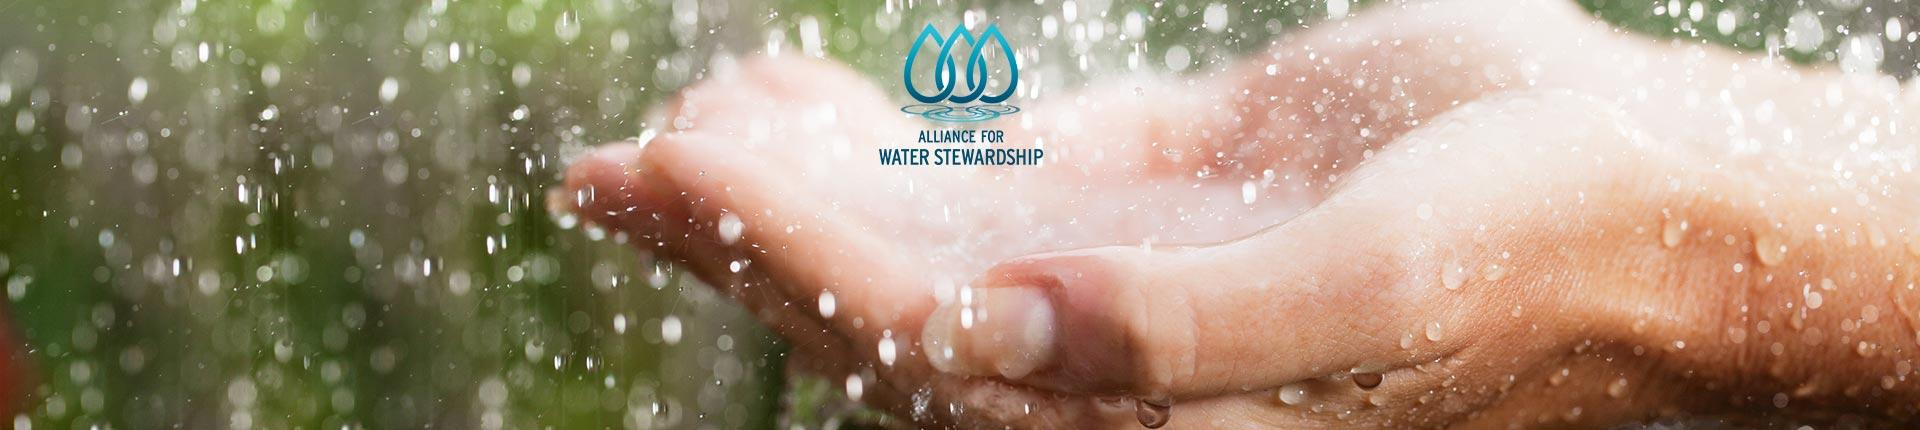 Acqua Panna Alliance for Water Stewardship Certification 2022